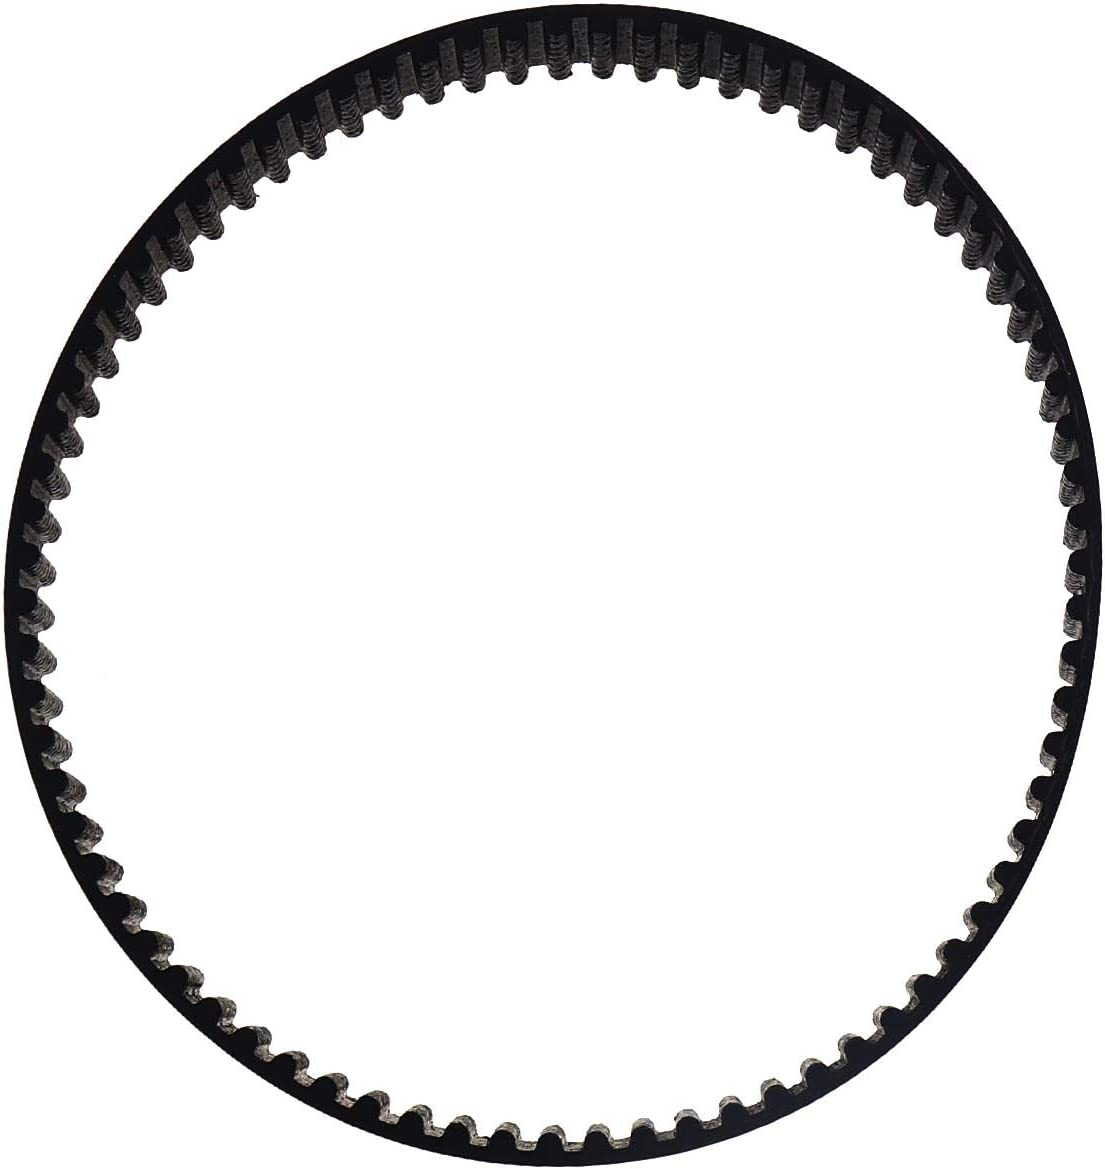 2pcs Rubber Planer Drive Belt HTD-3M-225 Compatible with Bosch PHO 15-82 PHO 16-82 PHO 20-82 0.35 Width